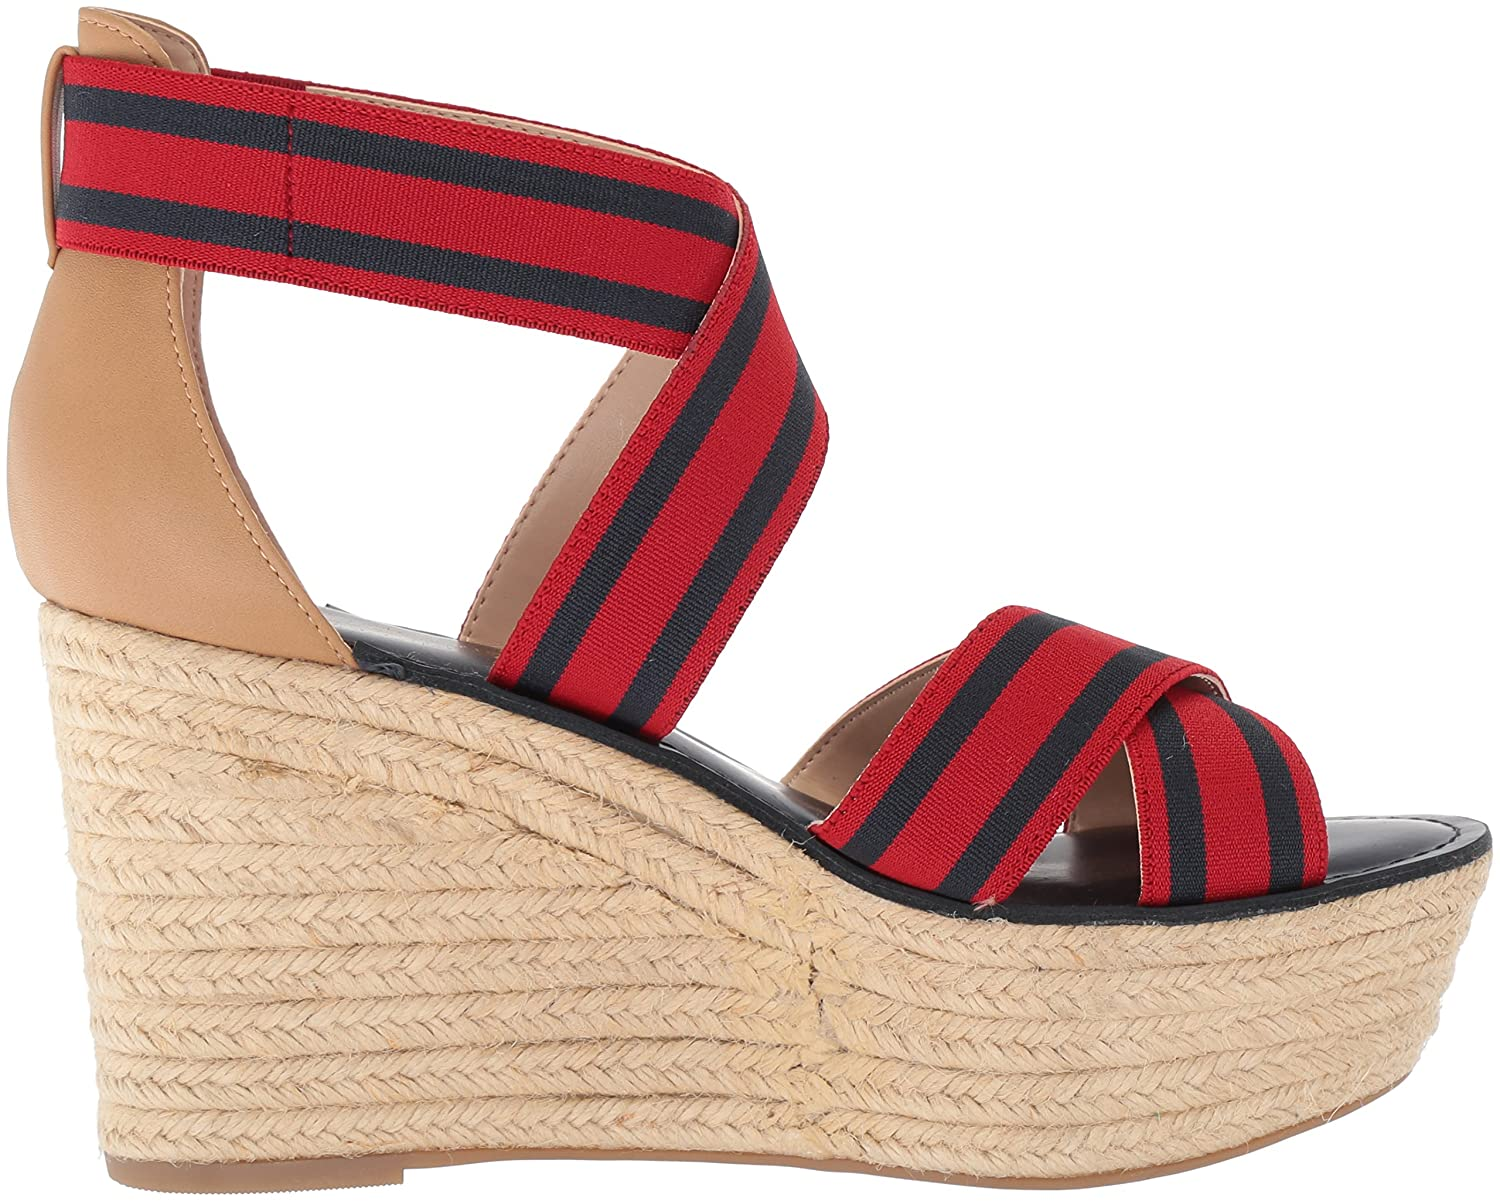 5be10202 Amazon.com | Tommy Hilfiger Women's Theia Espadrille Wedge Sandal |  Platforms & Wedges